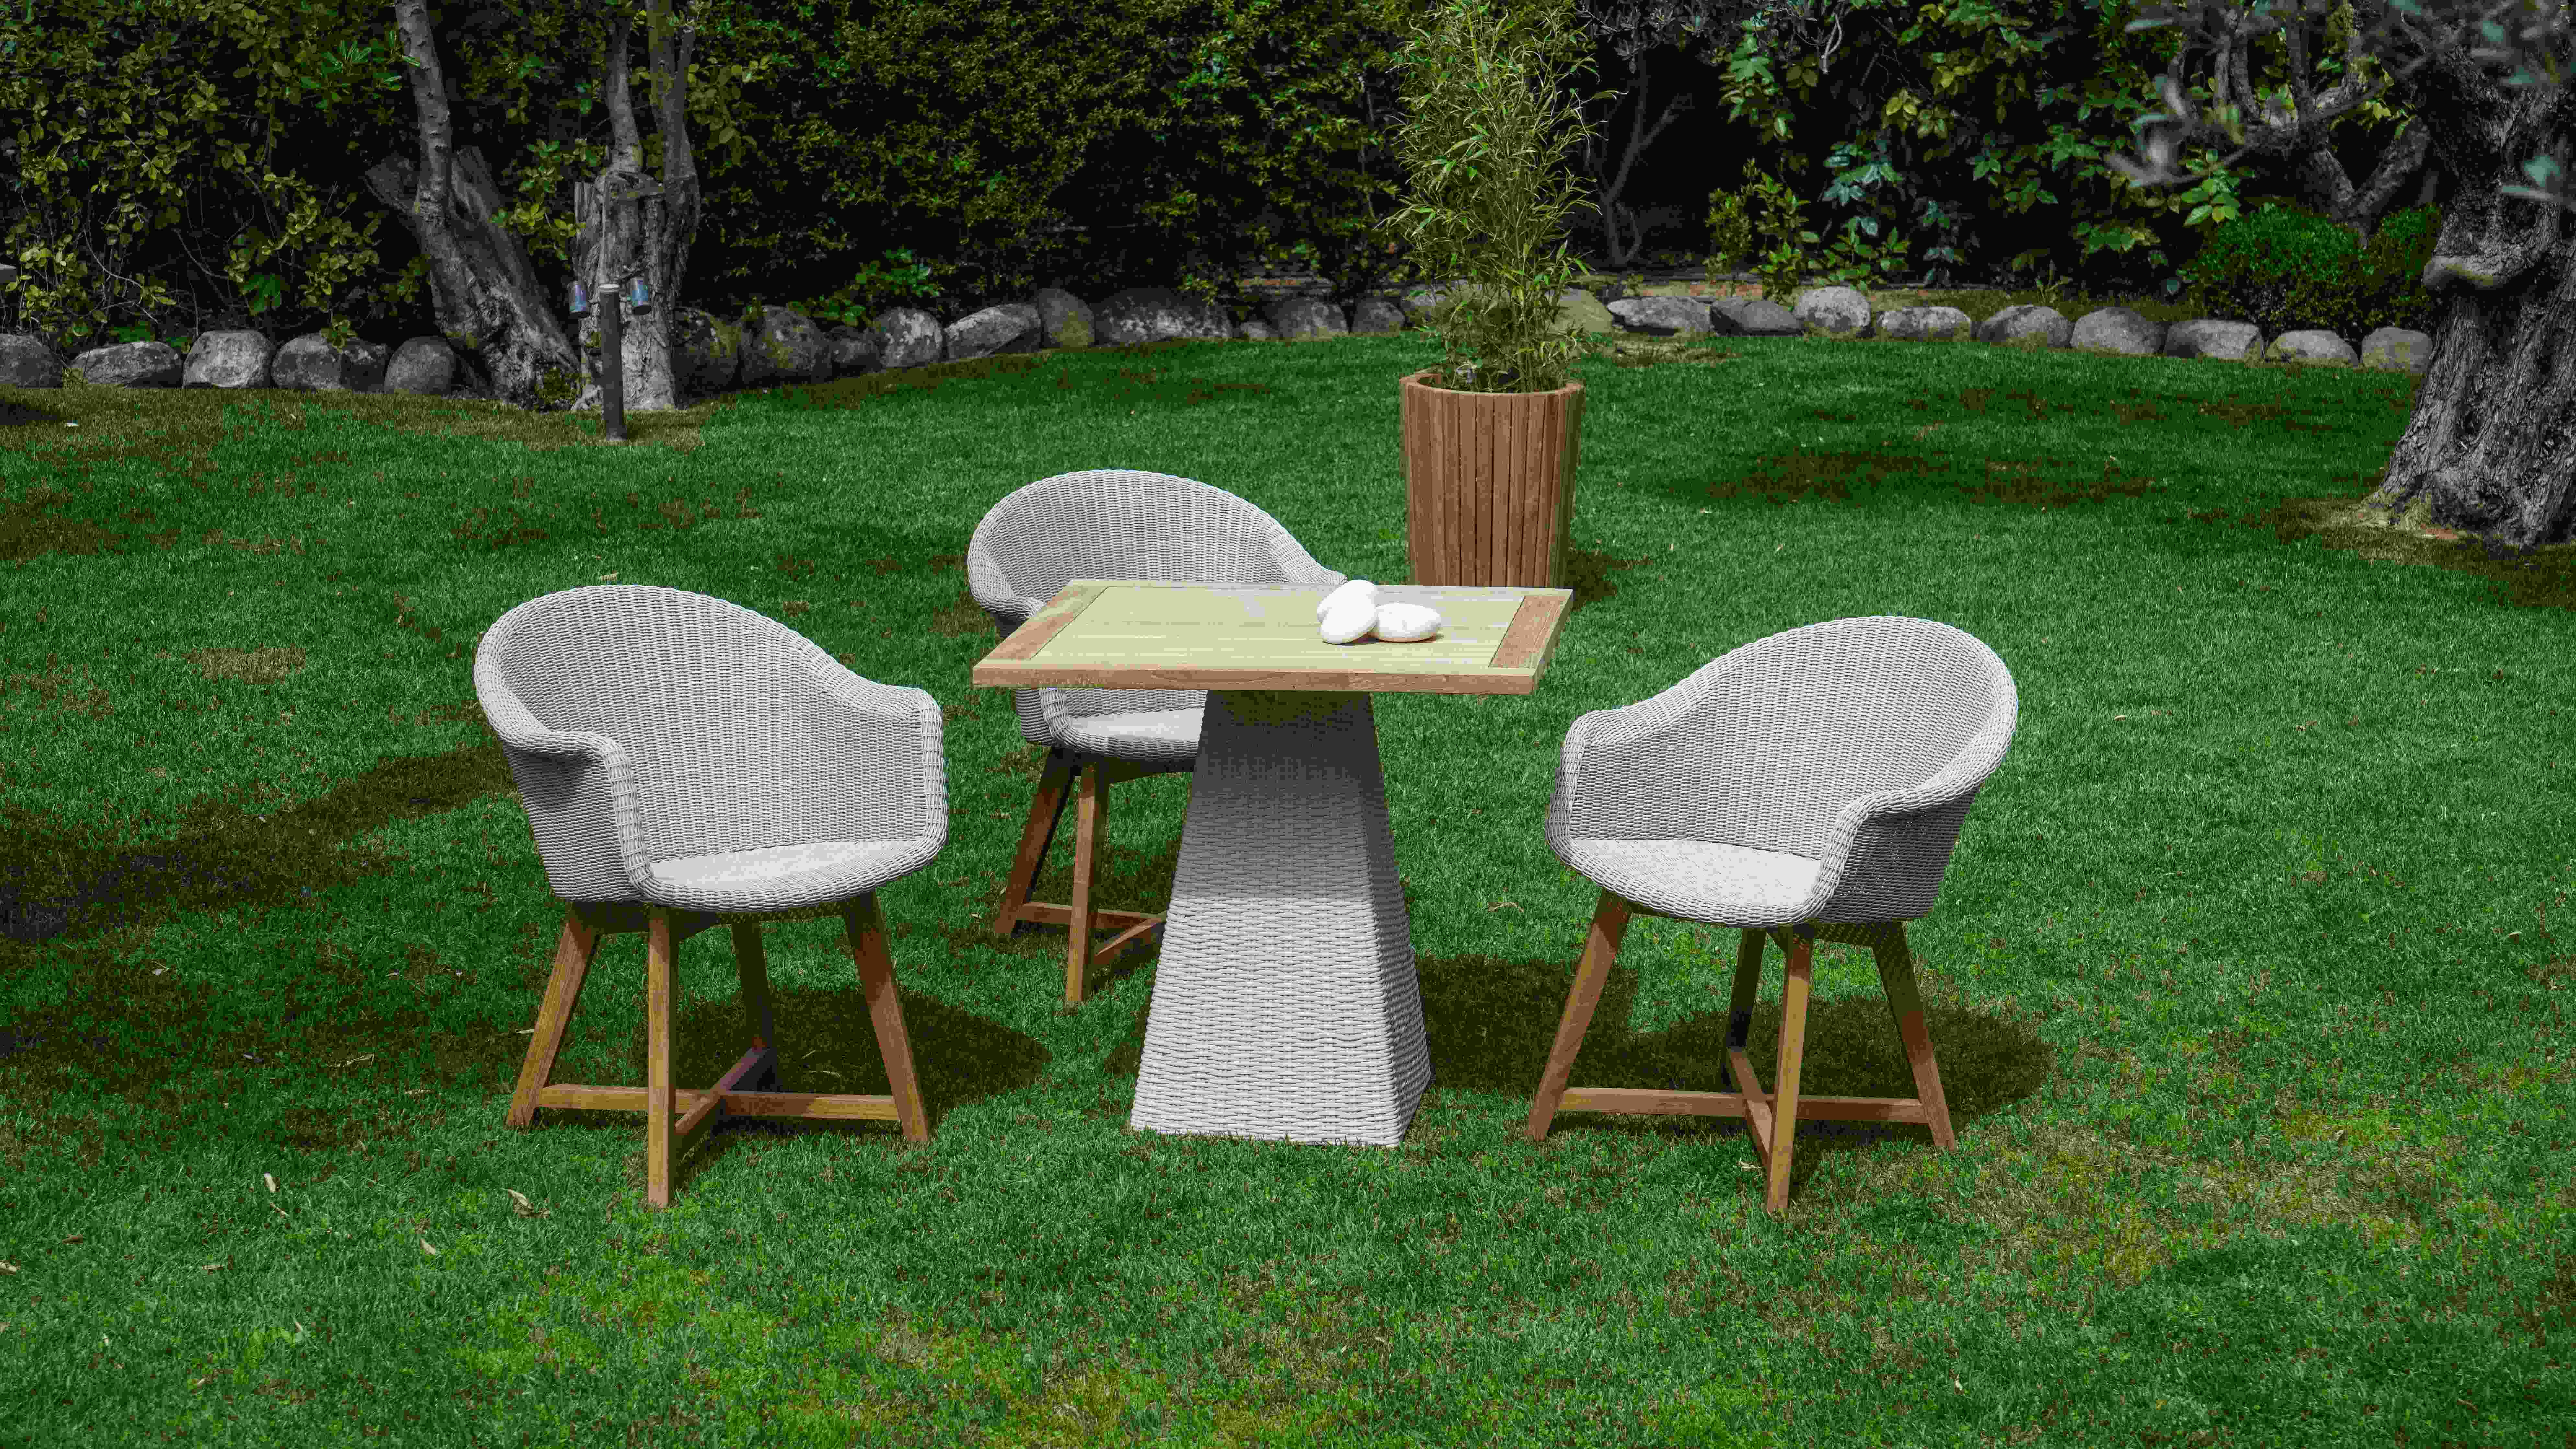 Gorgeous Backyard Collections Patio Furniture Extraordinary intended for size 7952 X 4472